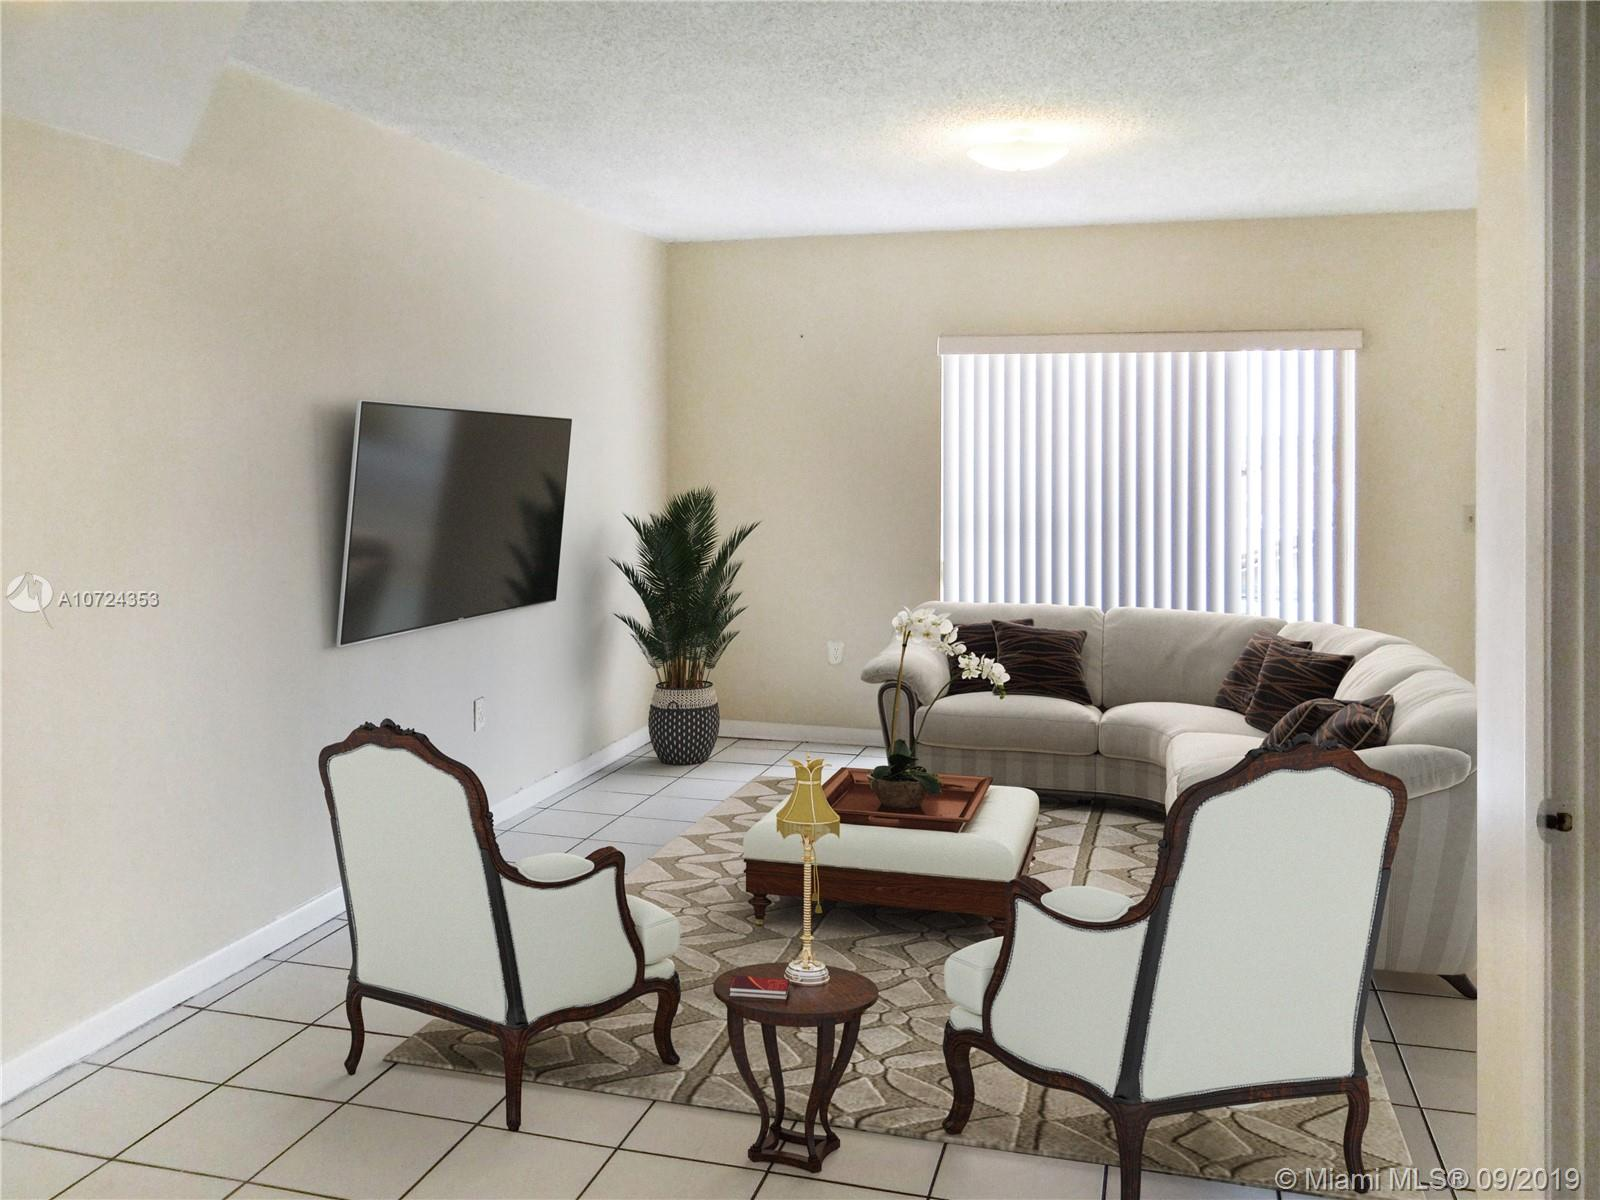 2630 W 76 St #209 For Sale A10724353, FL